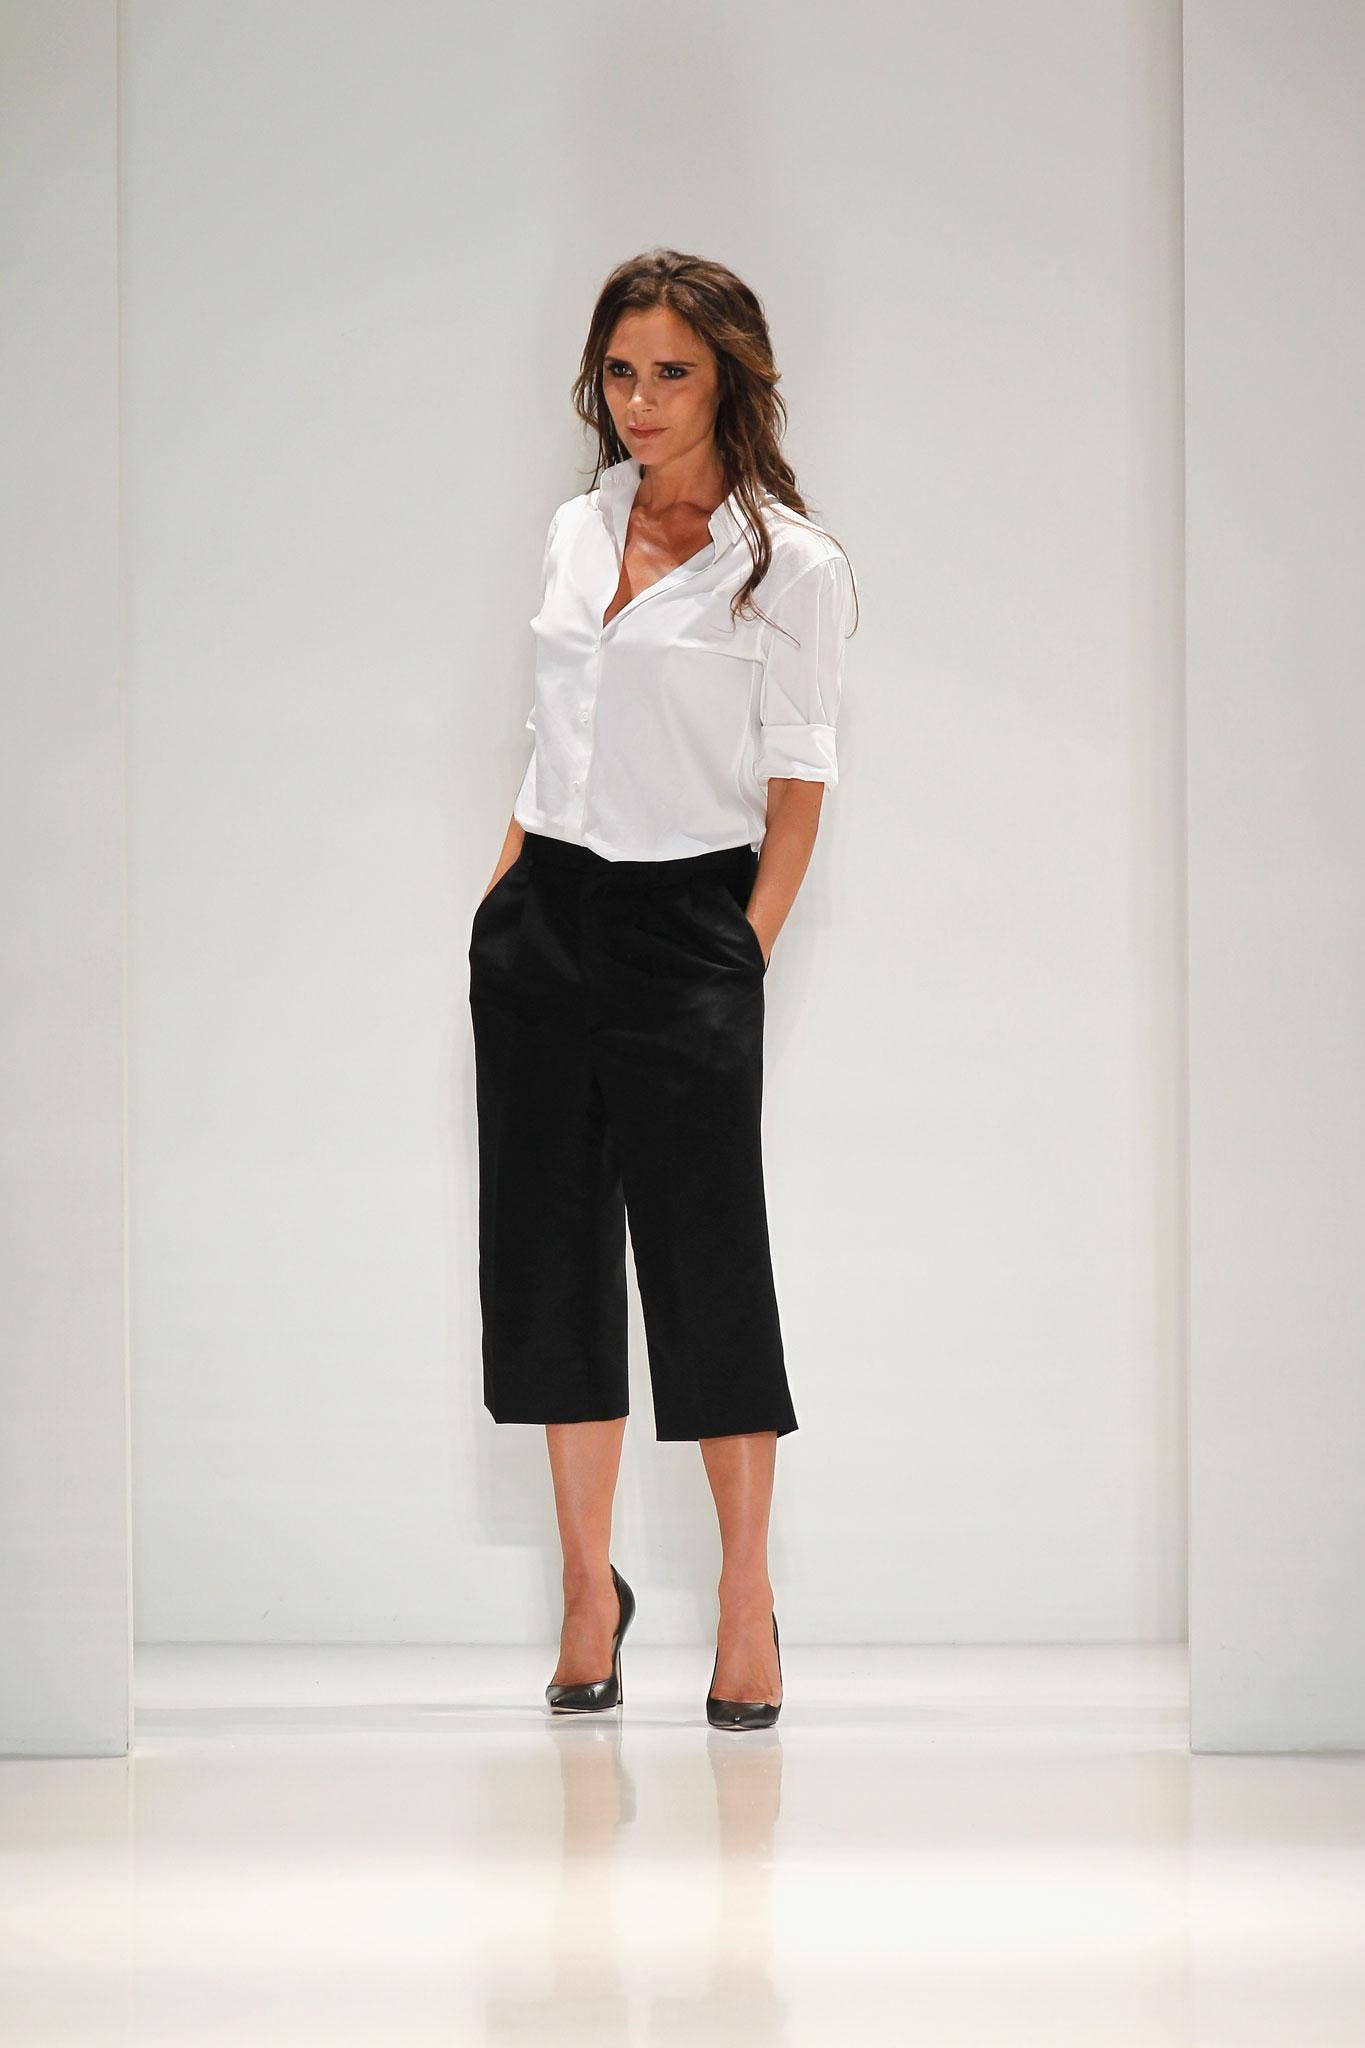 Victoria Beckham on the runway during her show at New York Fashion Week